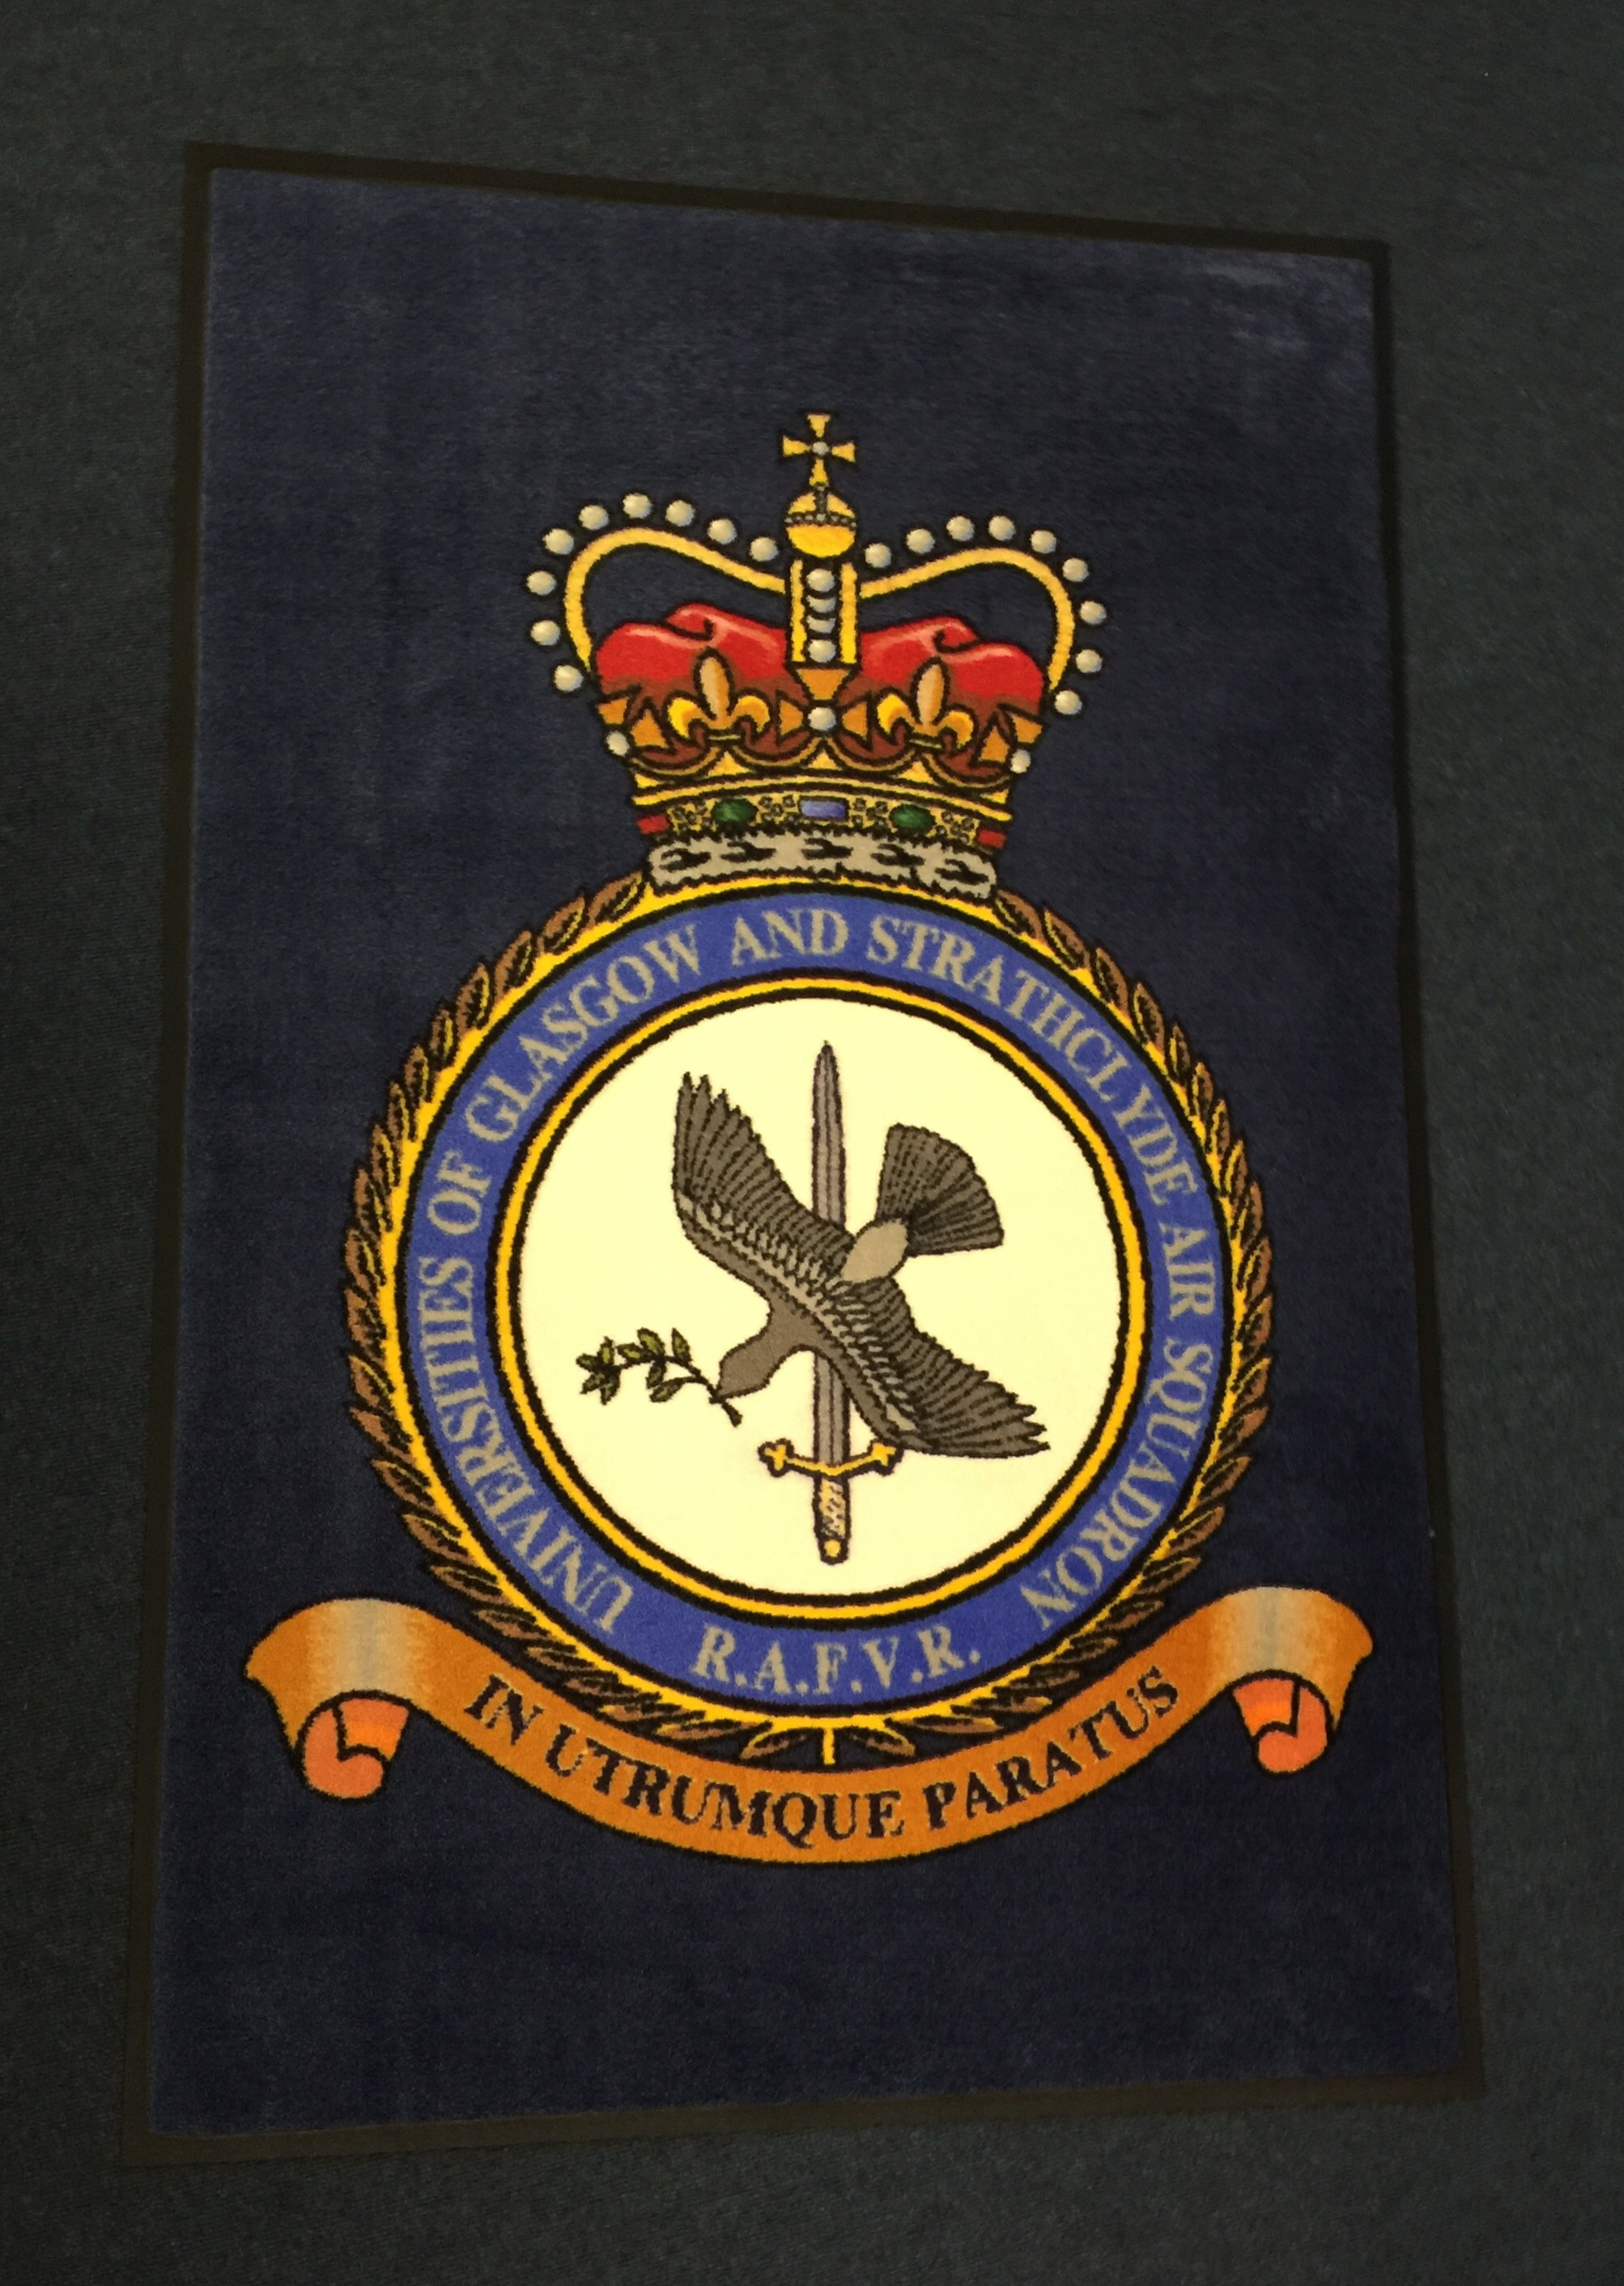 Rubber mats glasgow - We Were Very Pleased Today To Supply This Beautiful Custom Printed Carpet Mat To The Universities Of Glasgow And Strathclyde Air Squadron Of The Rafvr